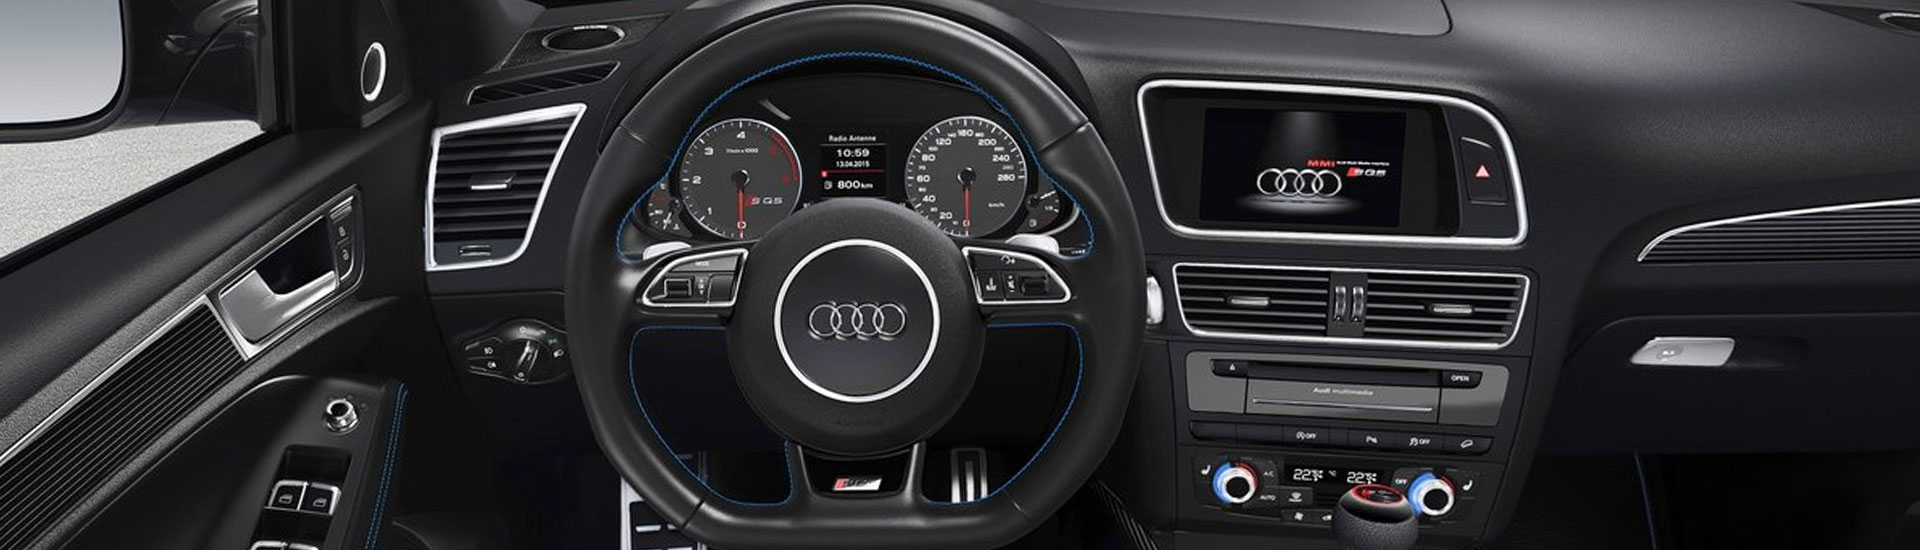 Audi SQ5 Custom Dash Kits